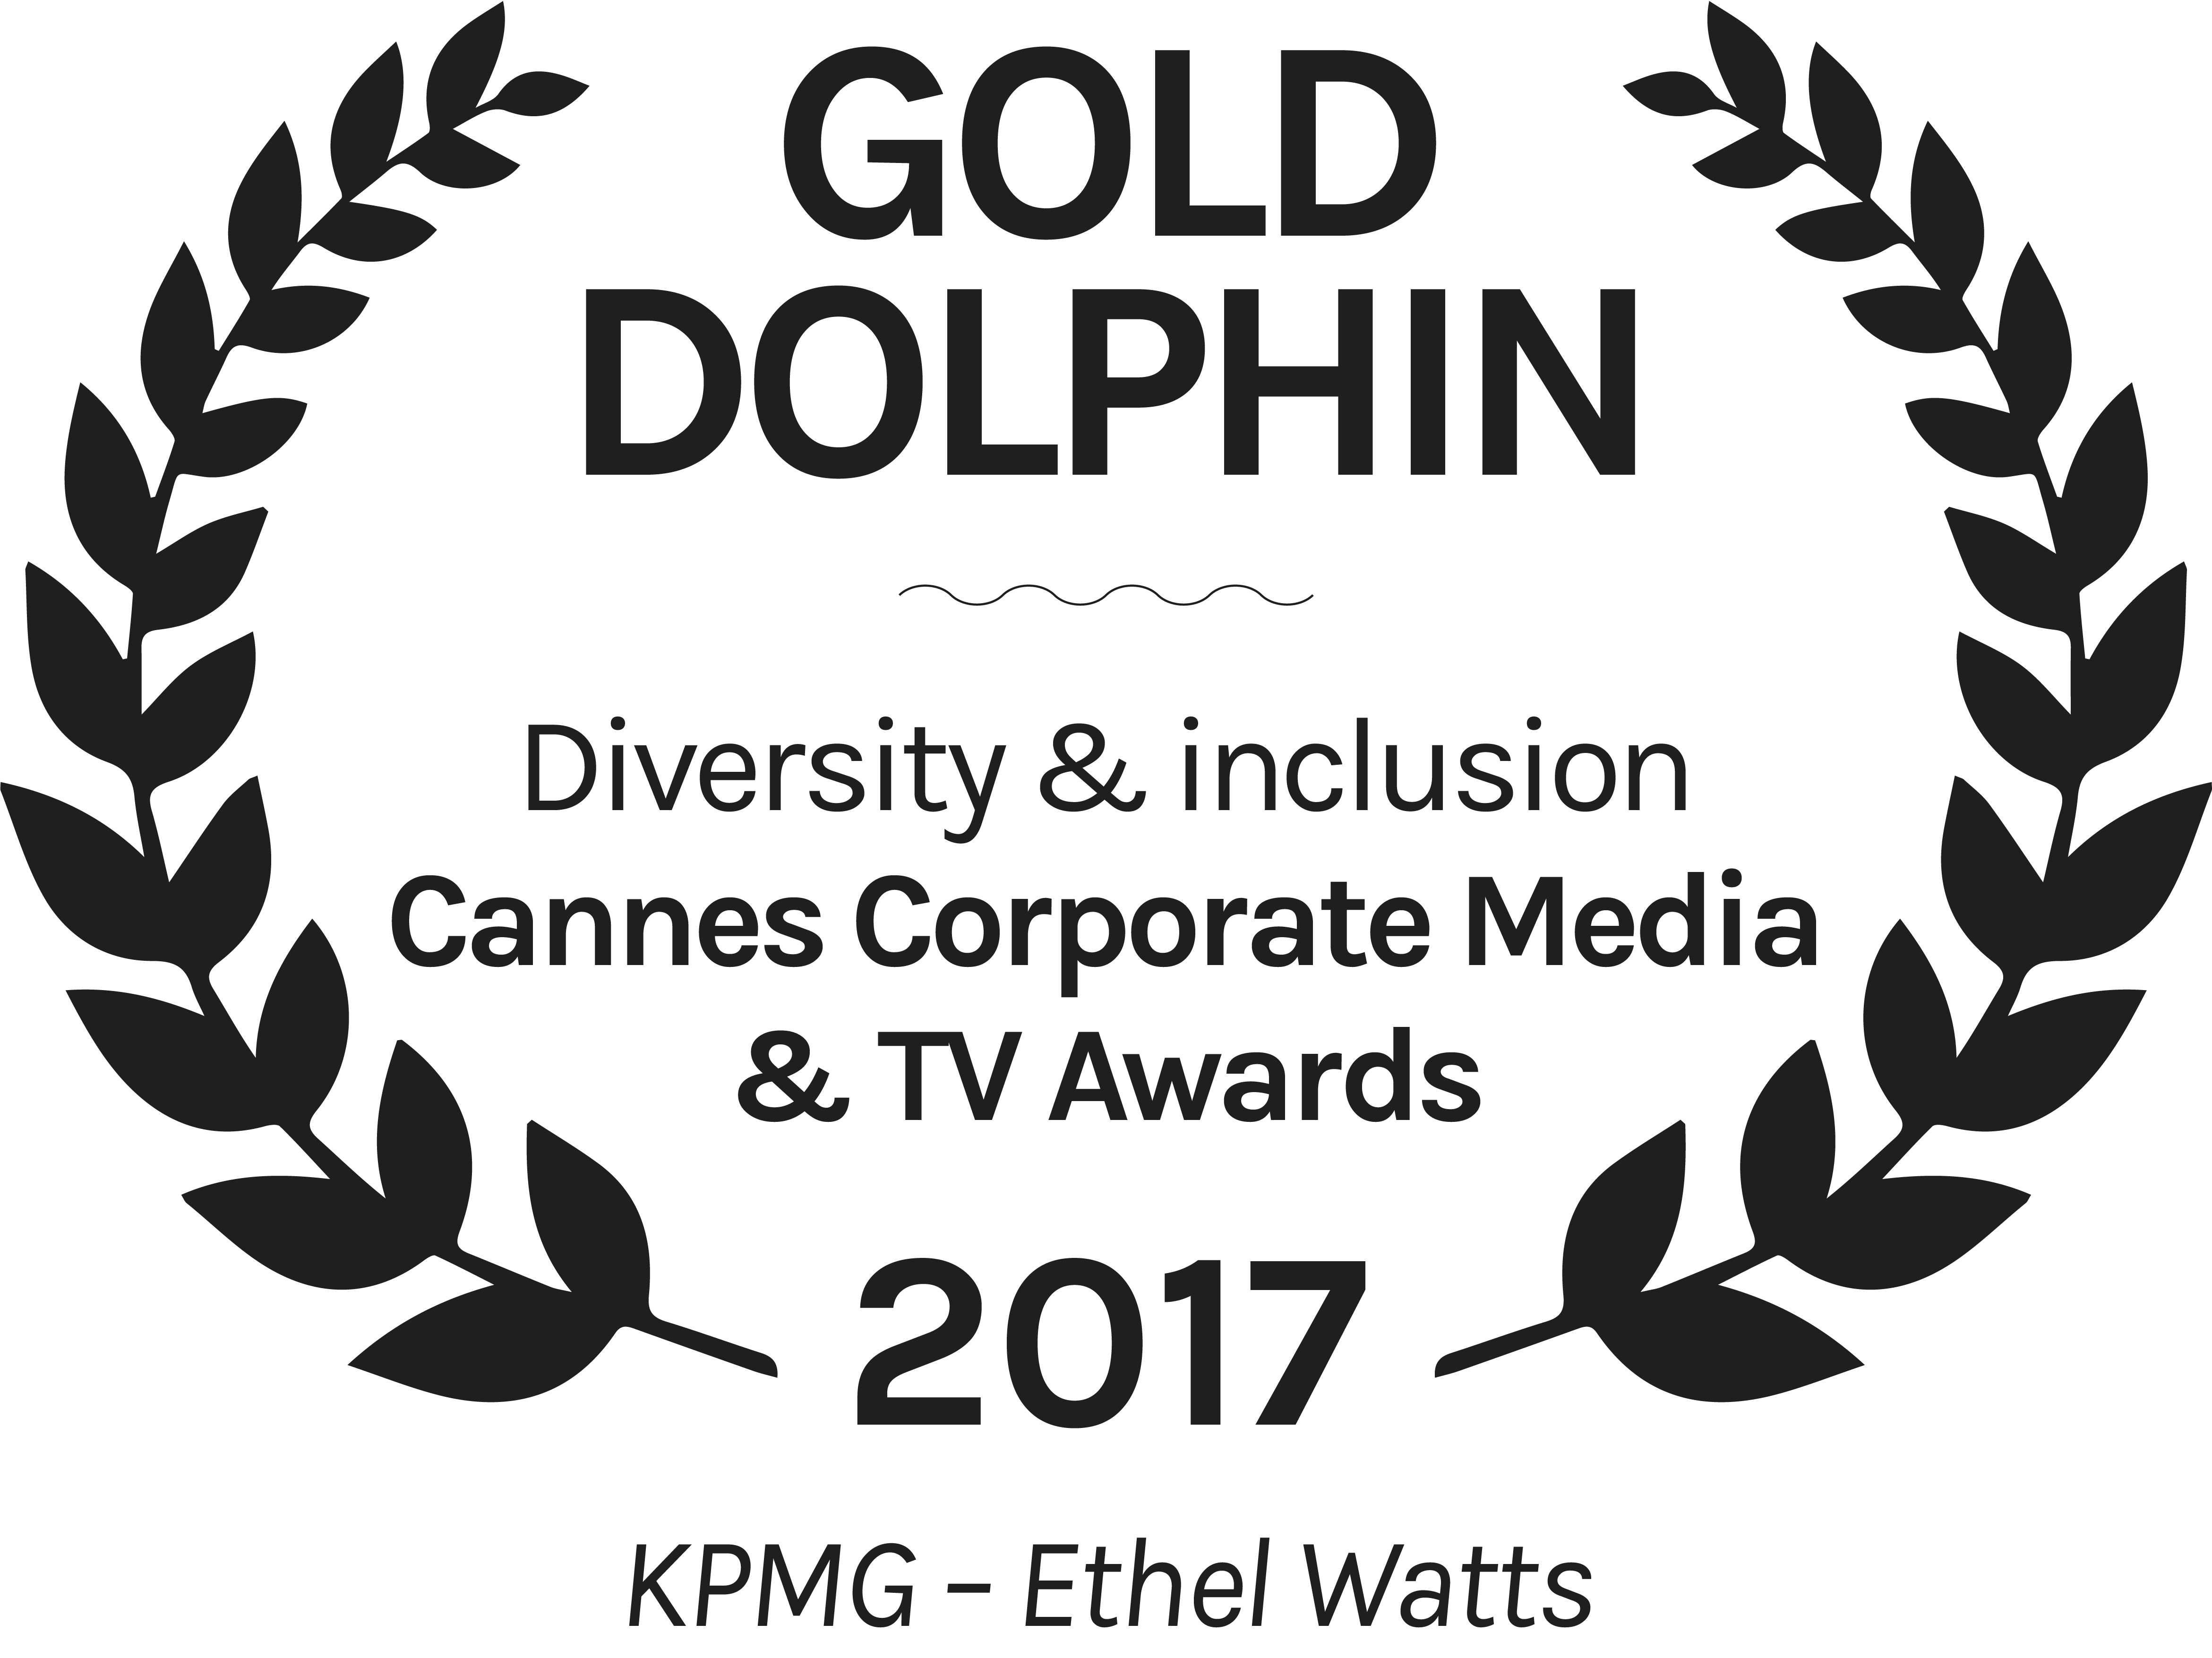 gold-dolphin-cannes-kpmg-ethel-watts.png